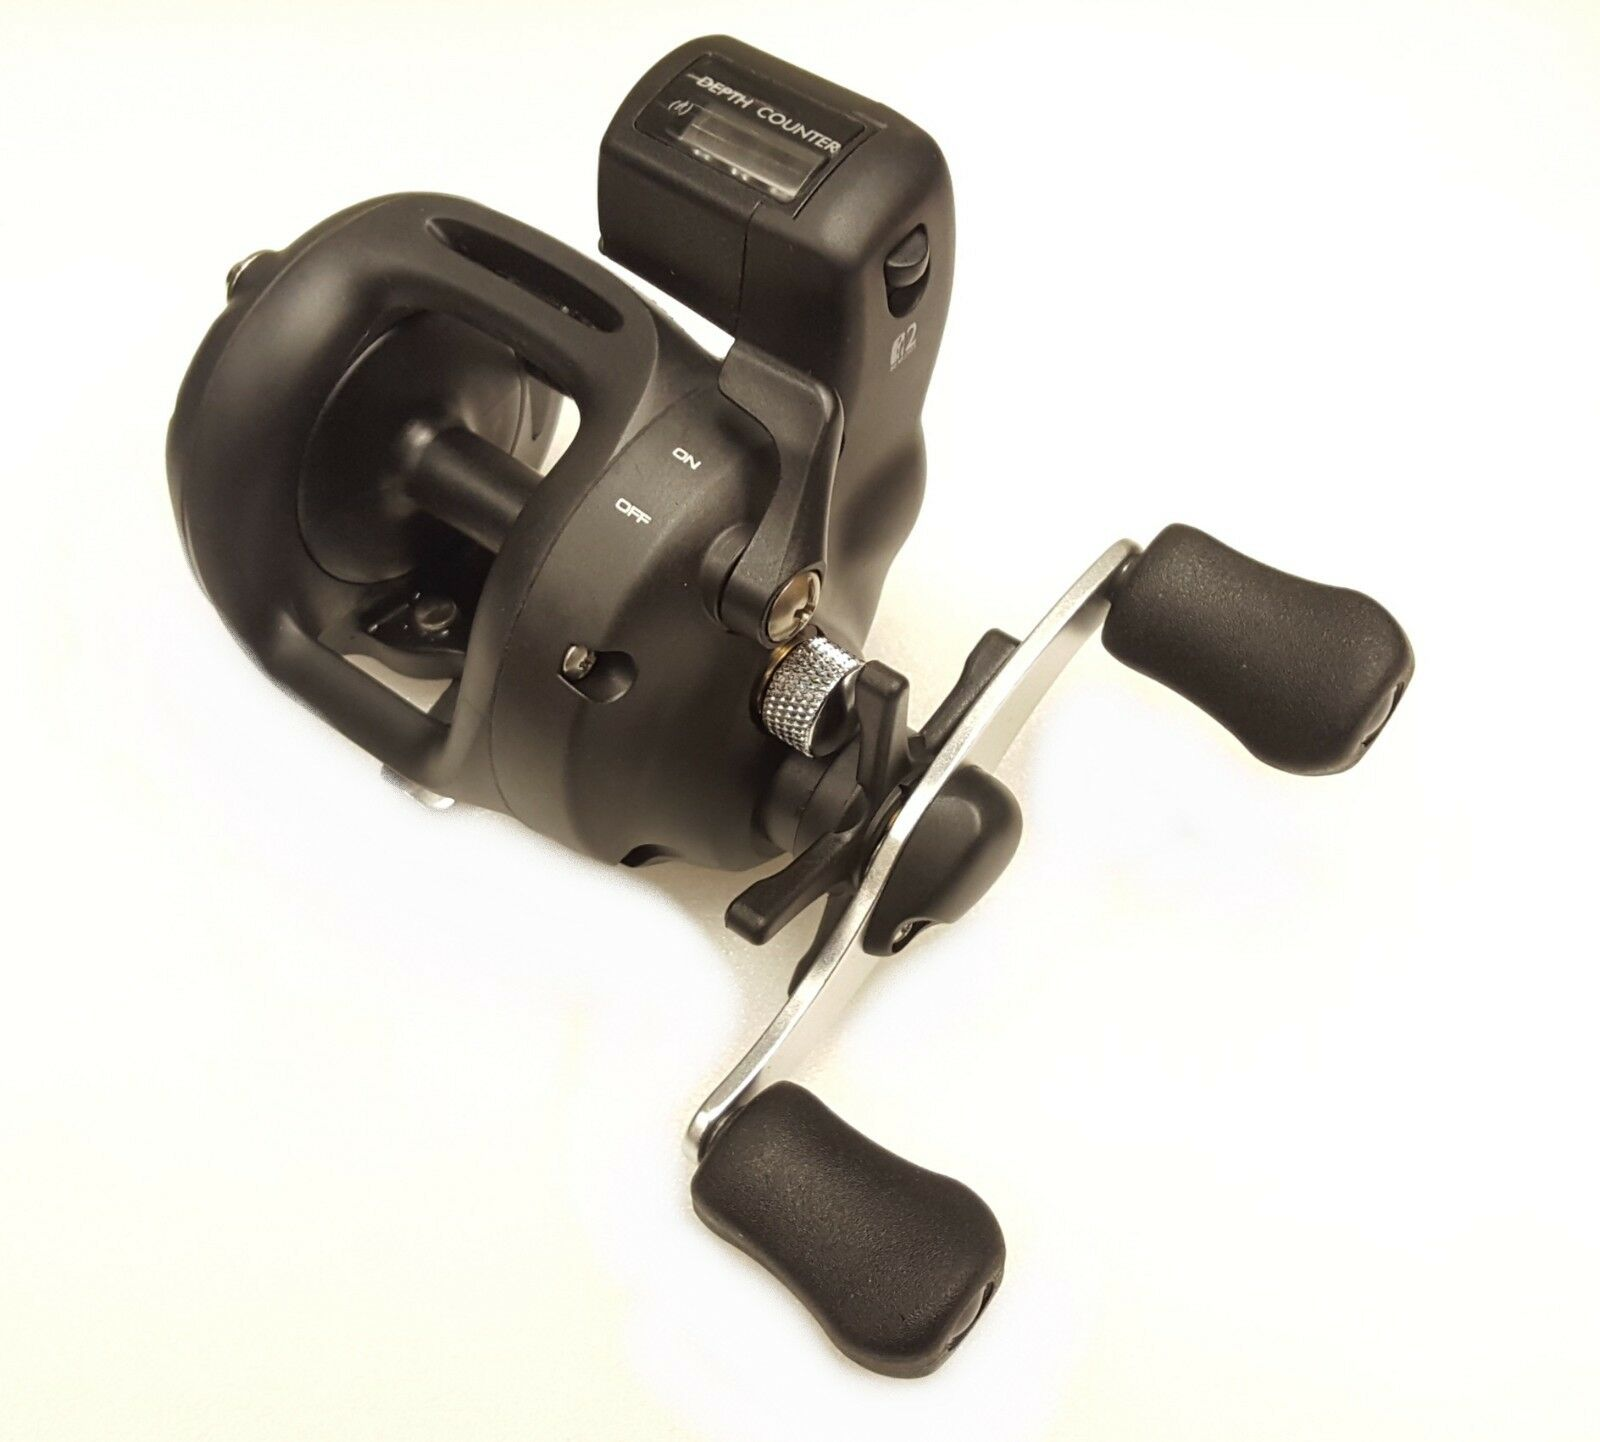 Okuma Magda Pro DXT 5.1 1 Levelwind Line Counter Reel, Right Hand - MA-15DXT-T